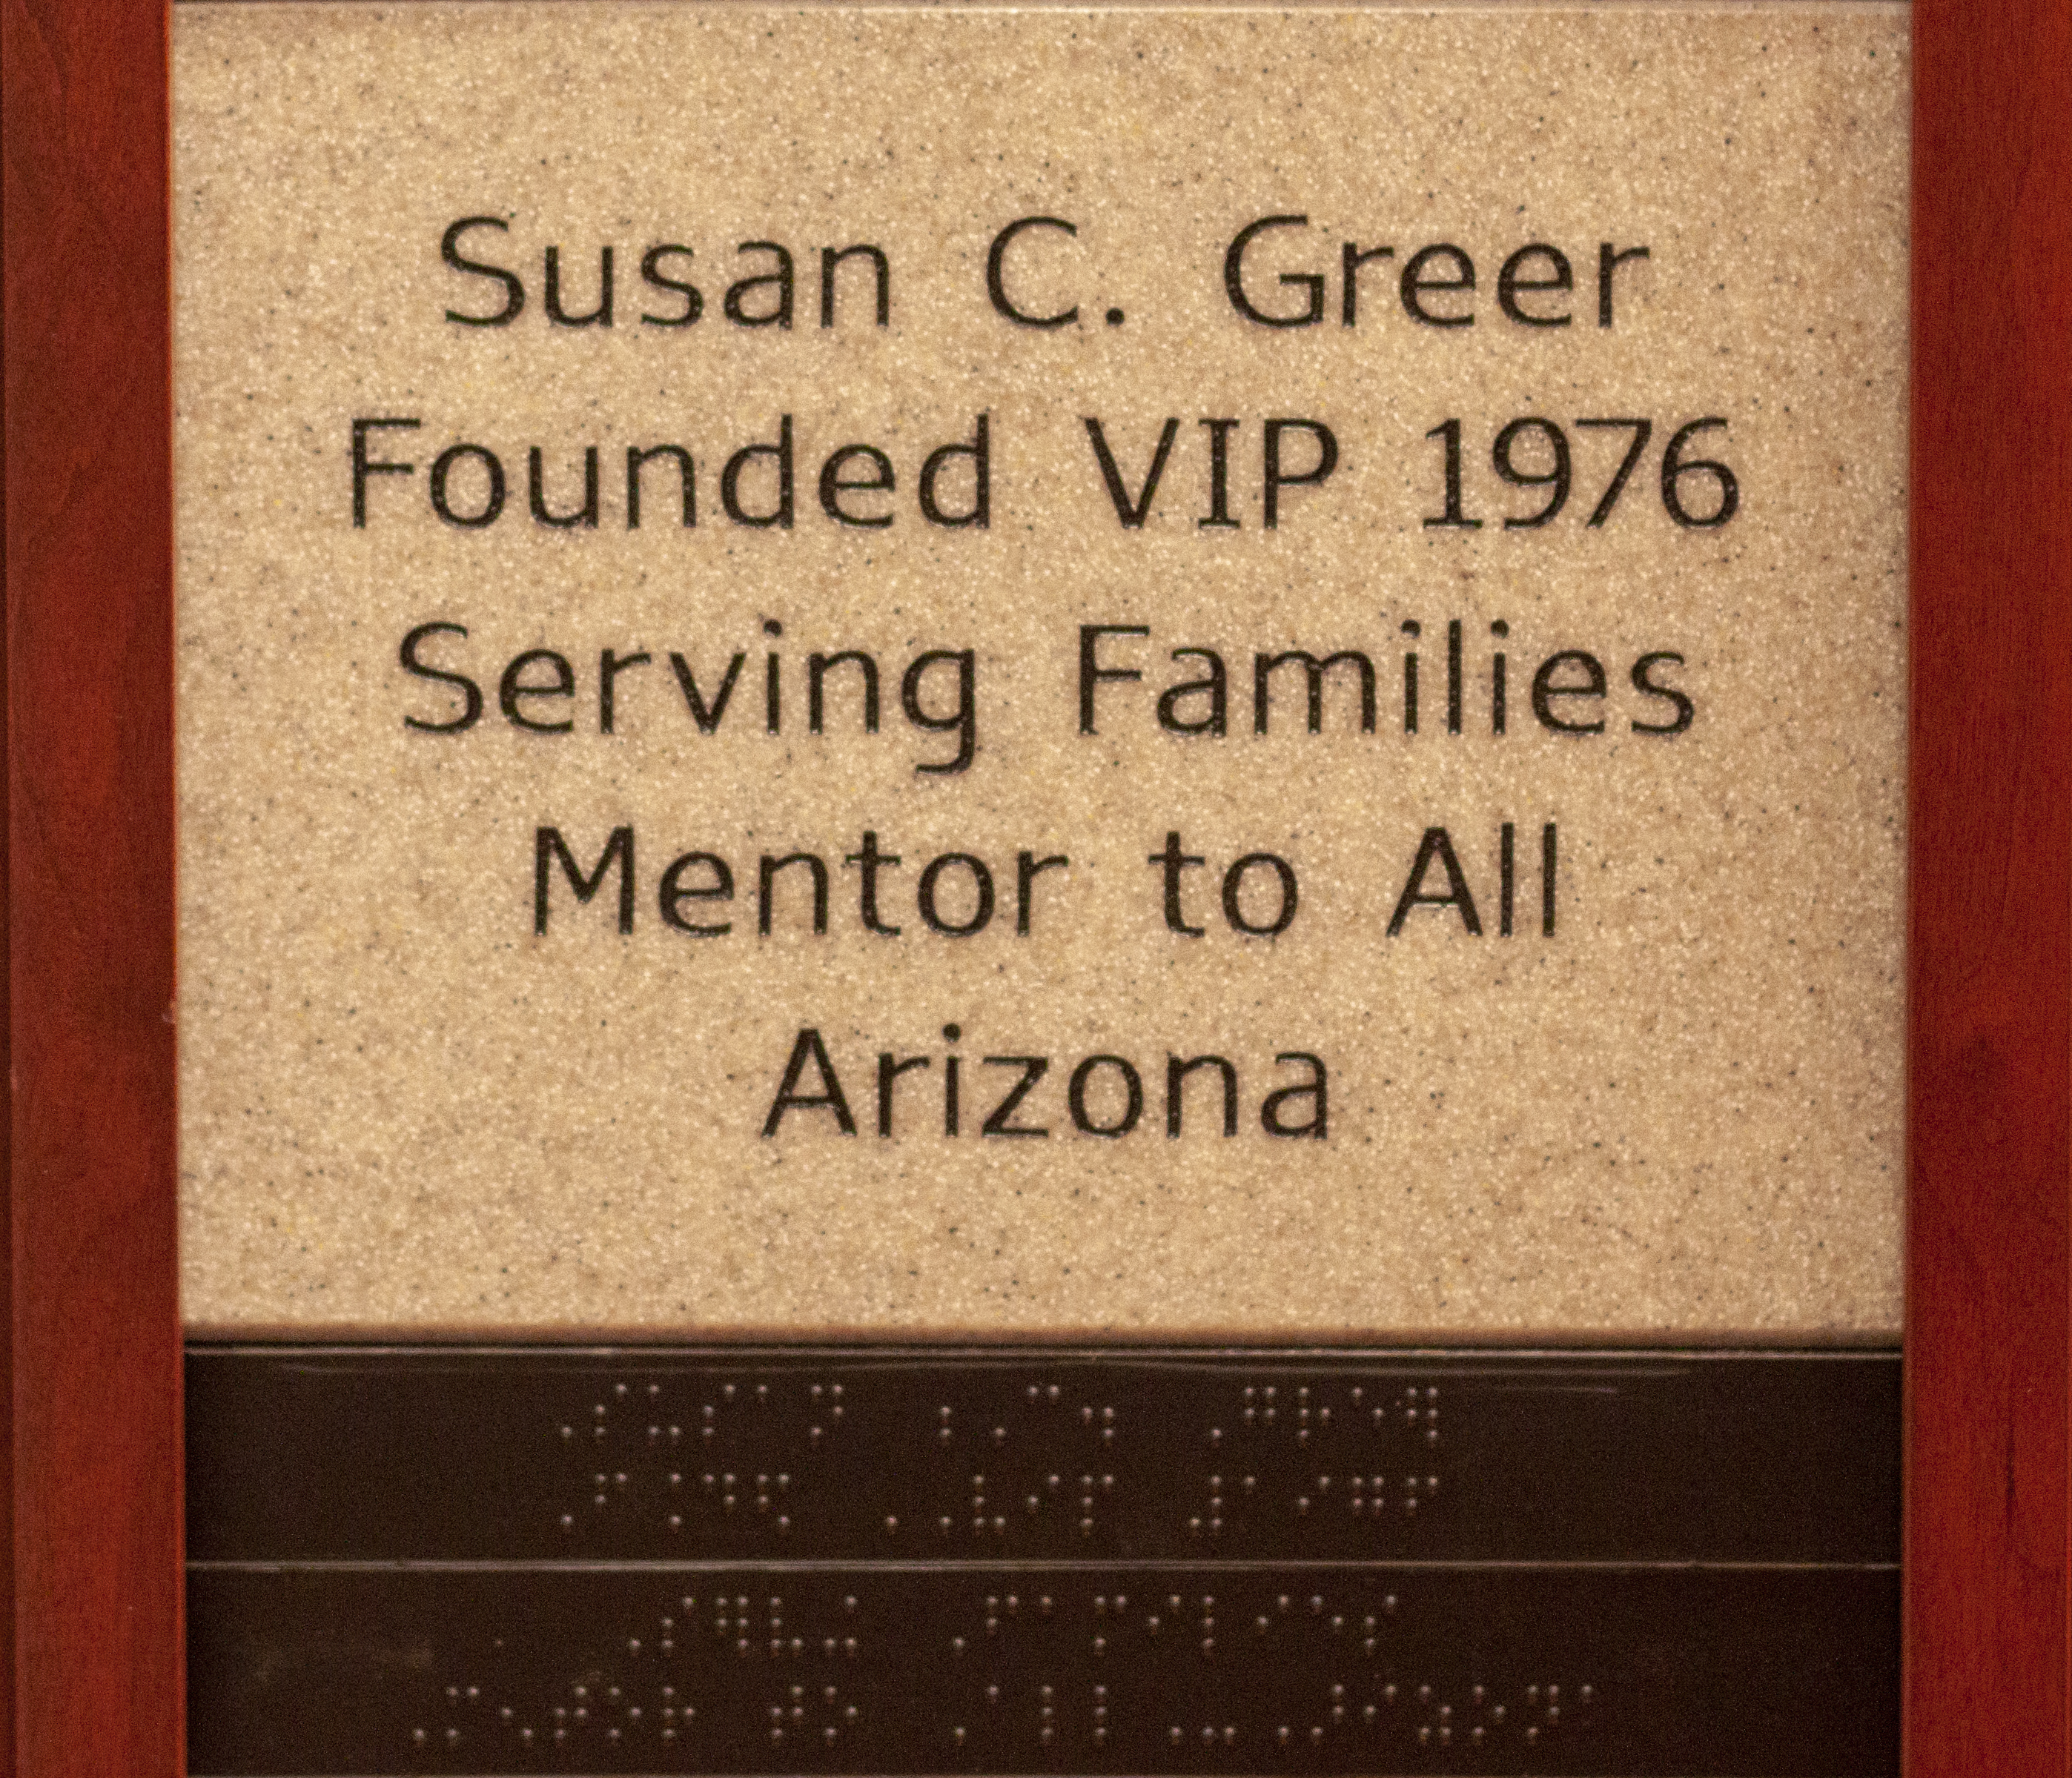 Susan C. Greer Founded VIP 1976 Serving Families Mentor to All Arizona